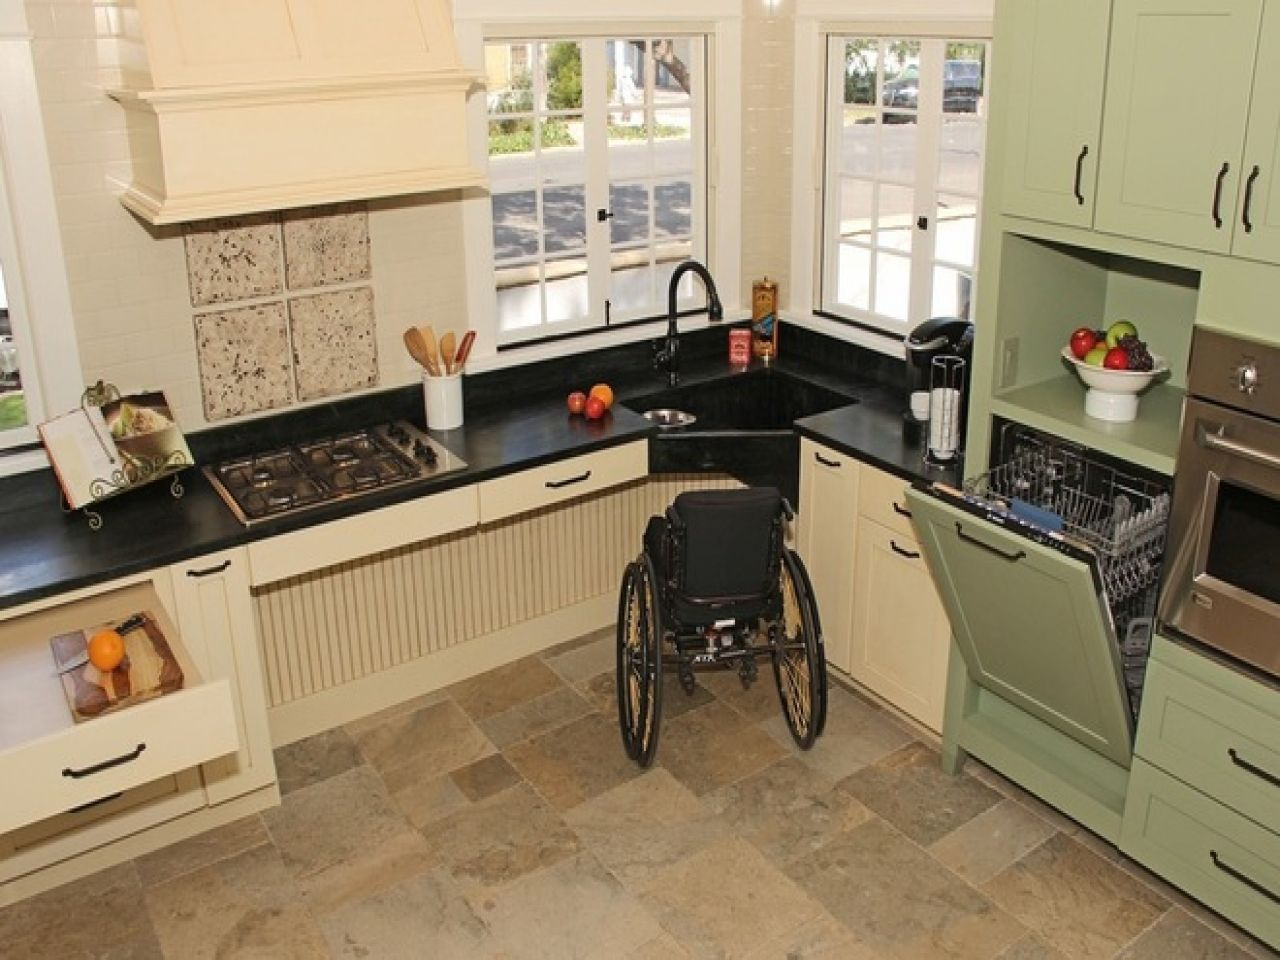 wheelchair accessible kitchen cabinets designer sinks kitchens wheelchair accessible kitchen 1243